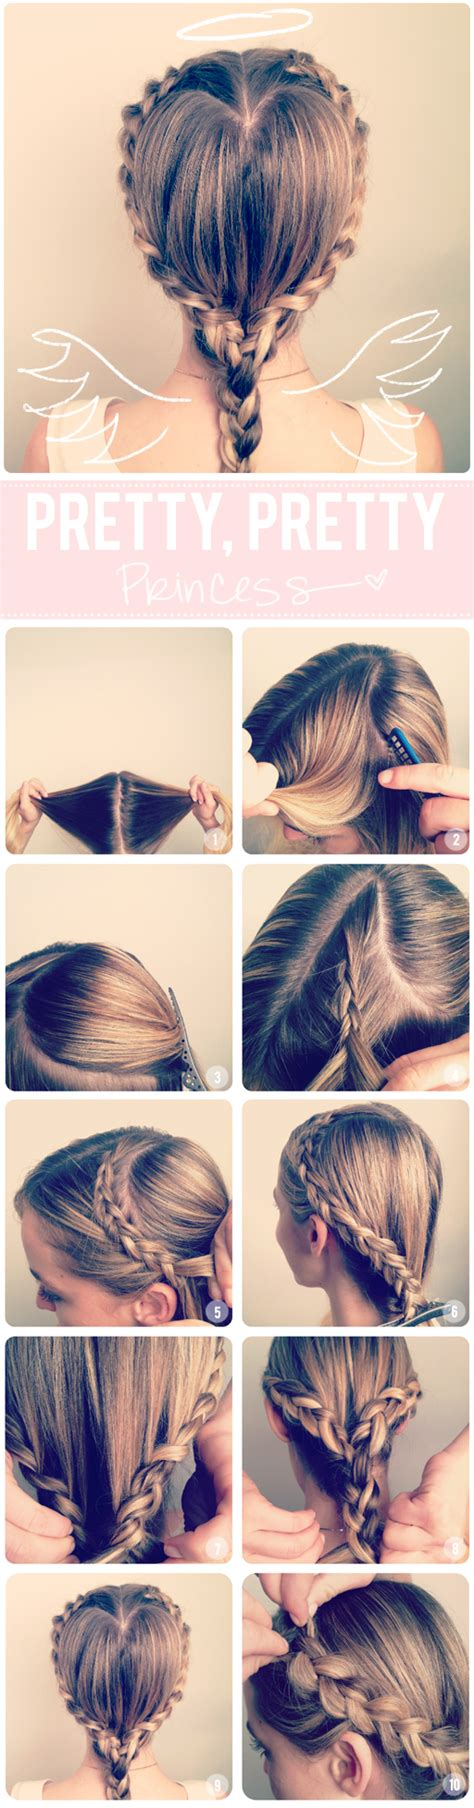 diy hairstyles we heart it 13 interesting tutorials for everyday hairstyles pretty